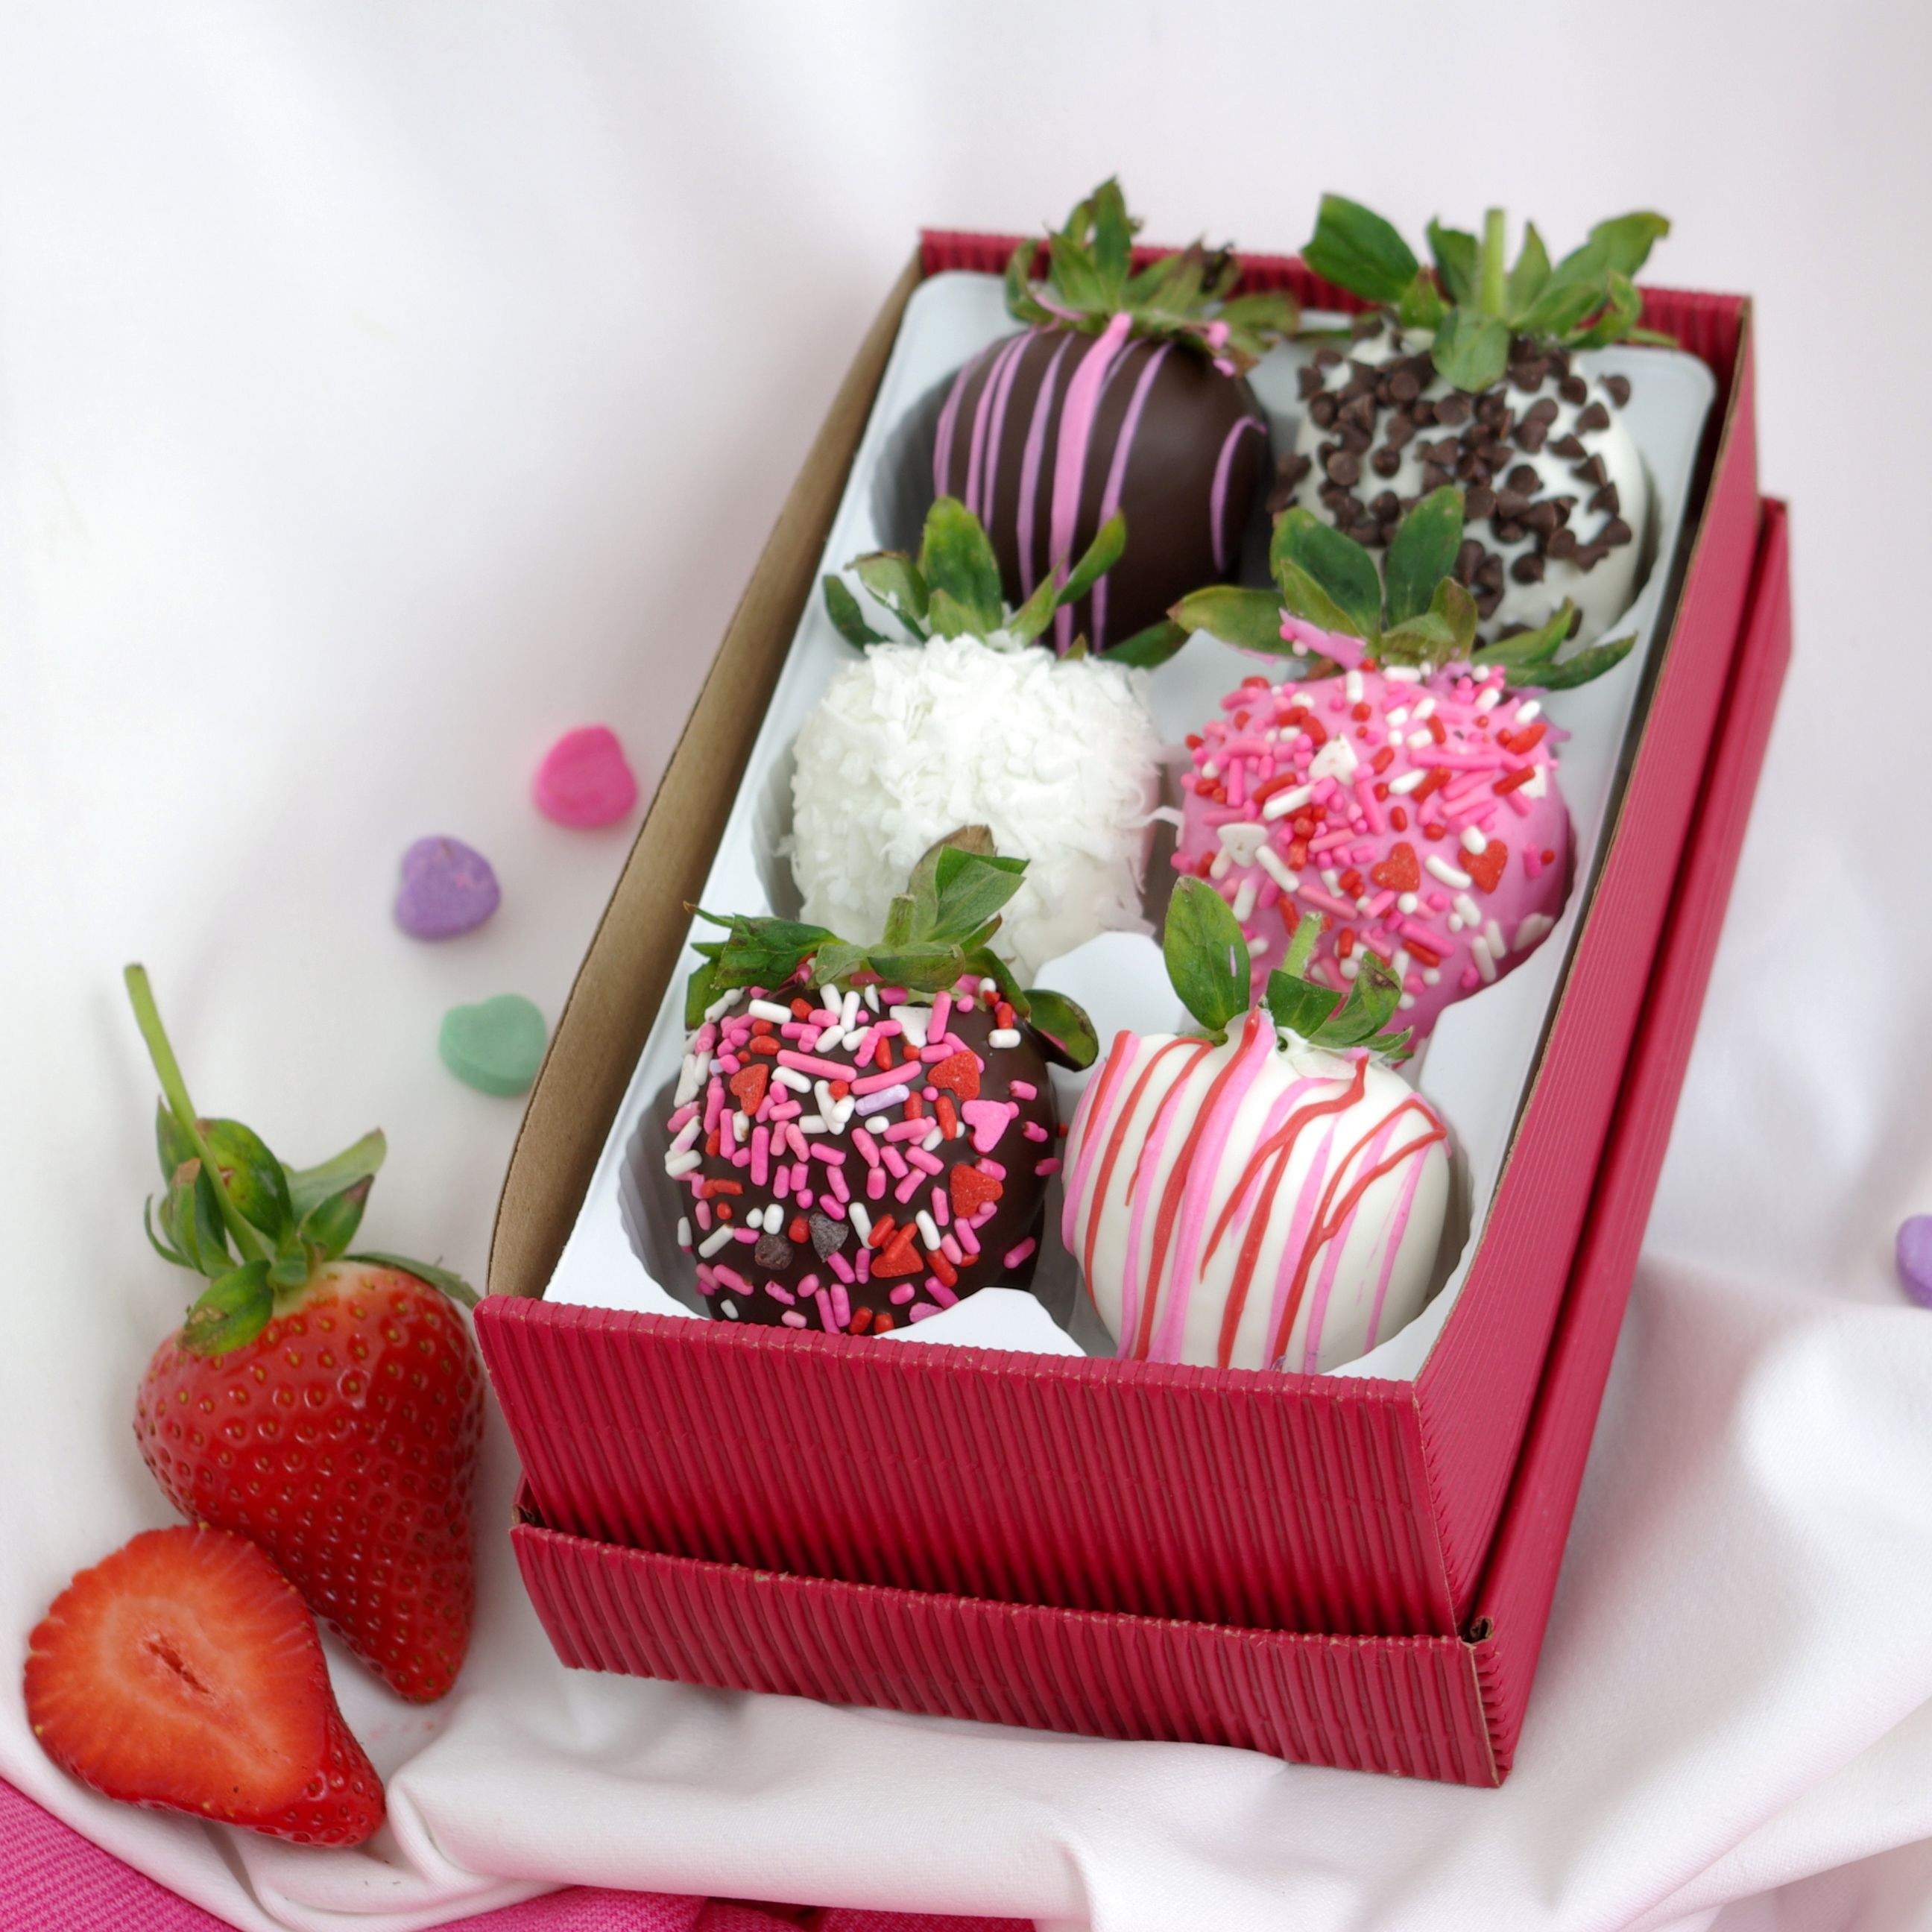 Cute Chocolate Covered Strawberries Chocolate Covered Strawberries Chocolate Covered Fruit Chocolate Strawberries